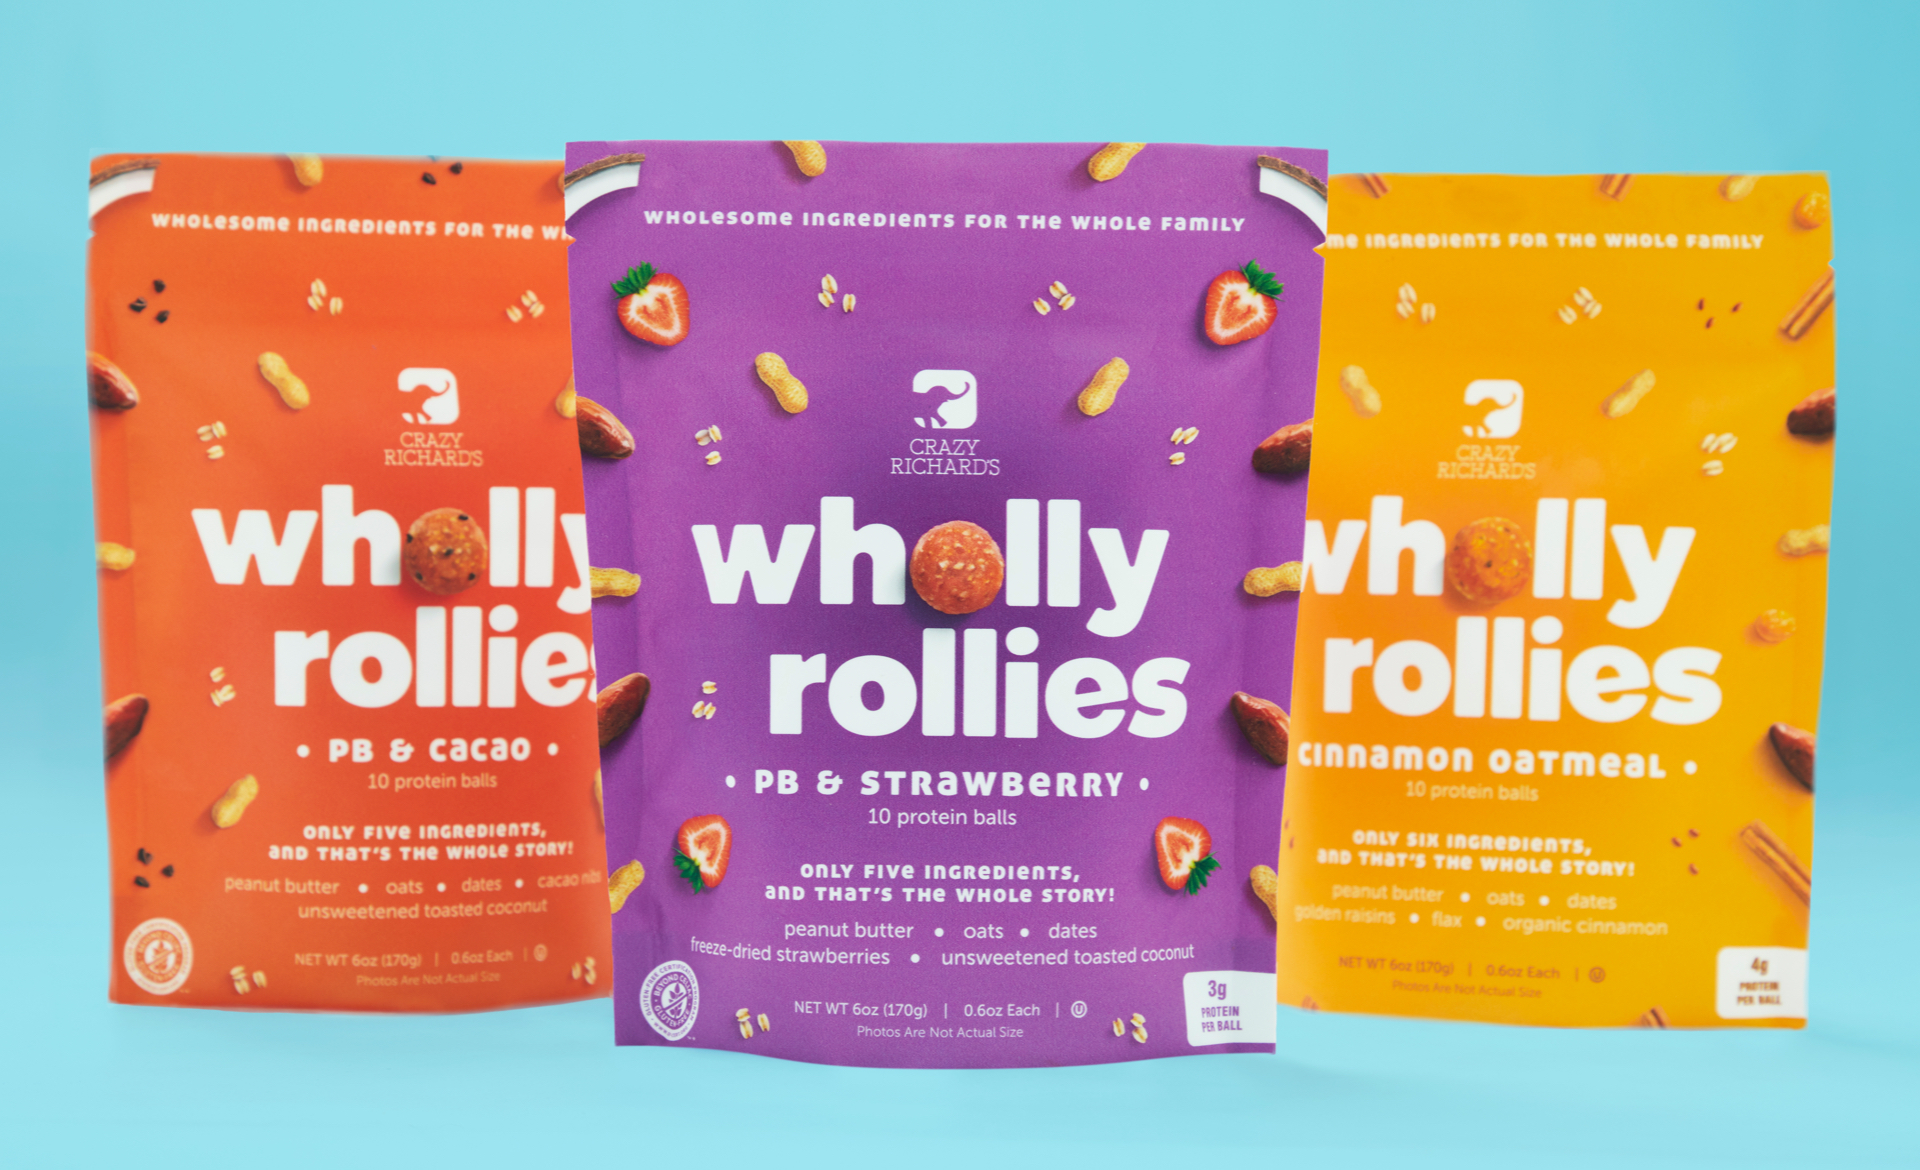 Wholly Rollies final packaging design